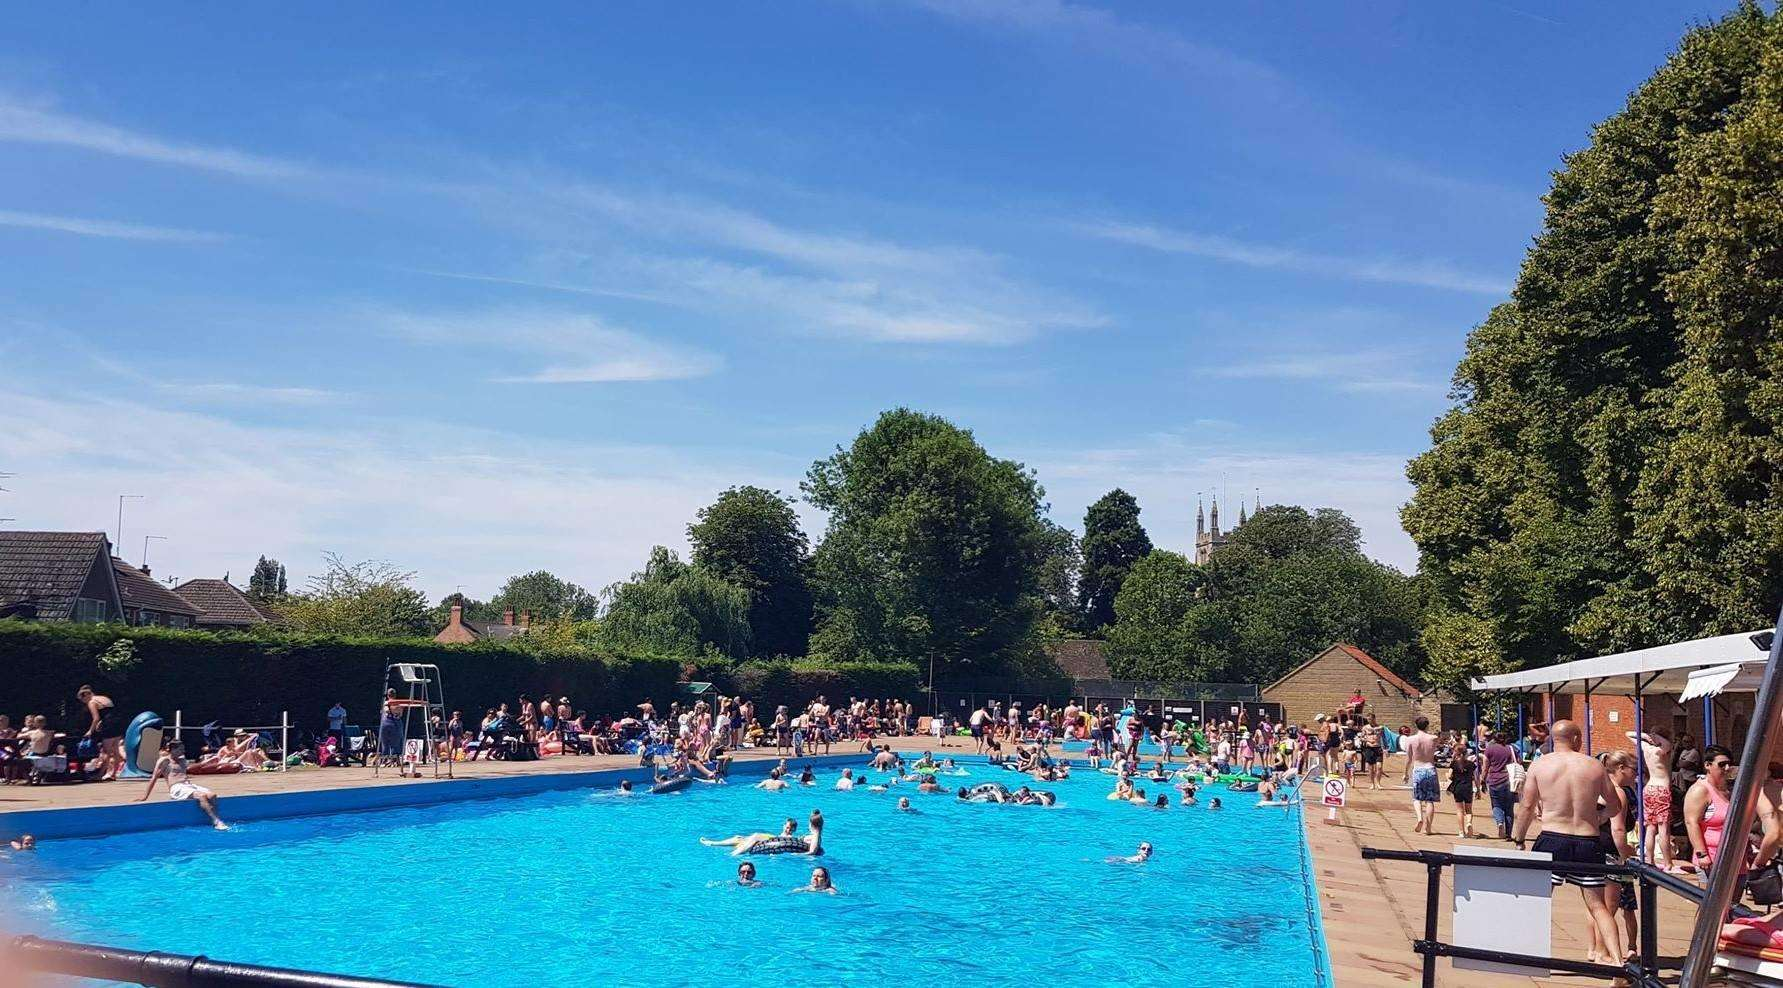 Bourne Outdoor Pool which was busy during the heatwave